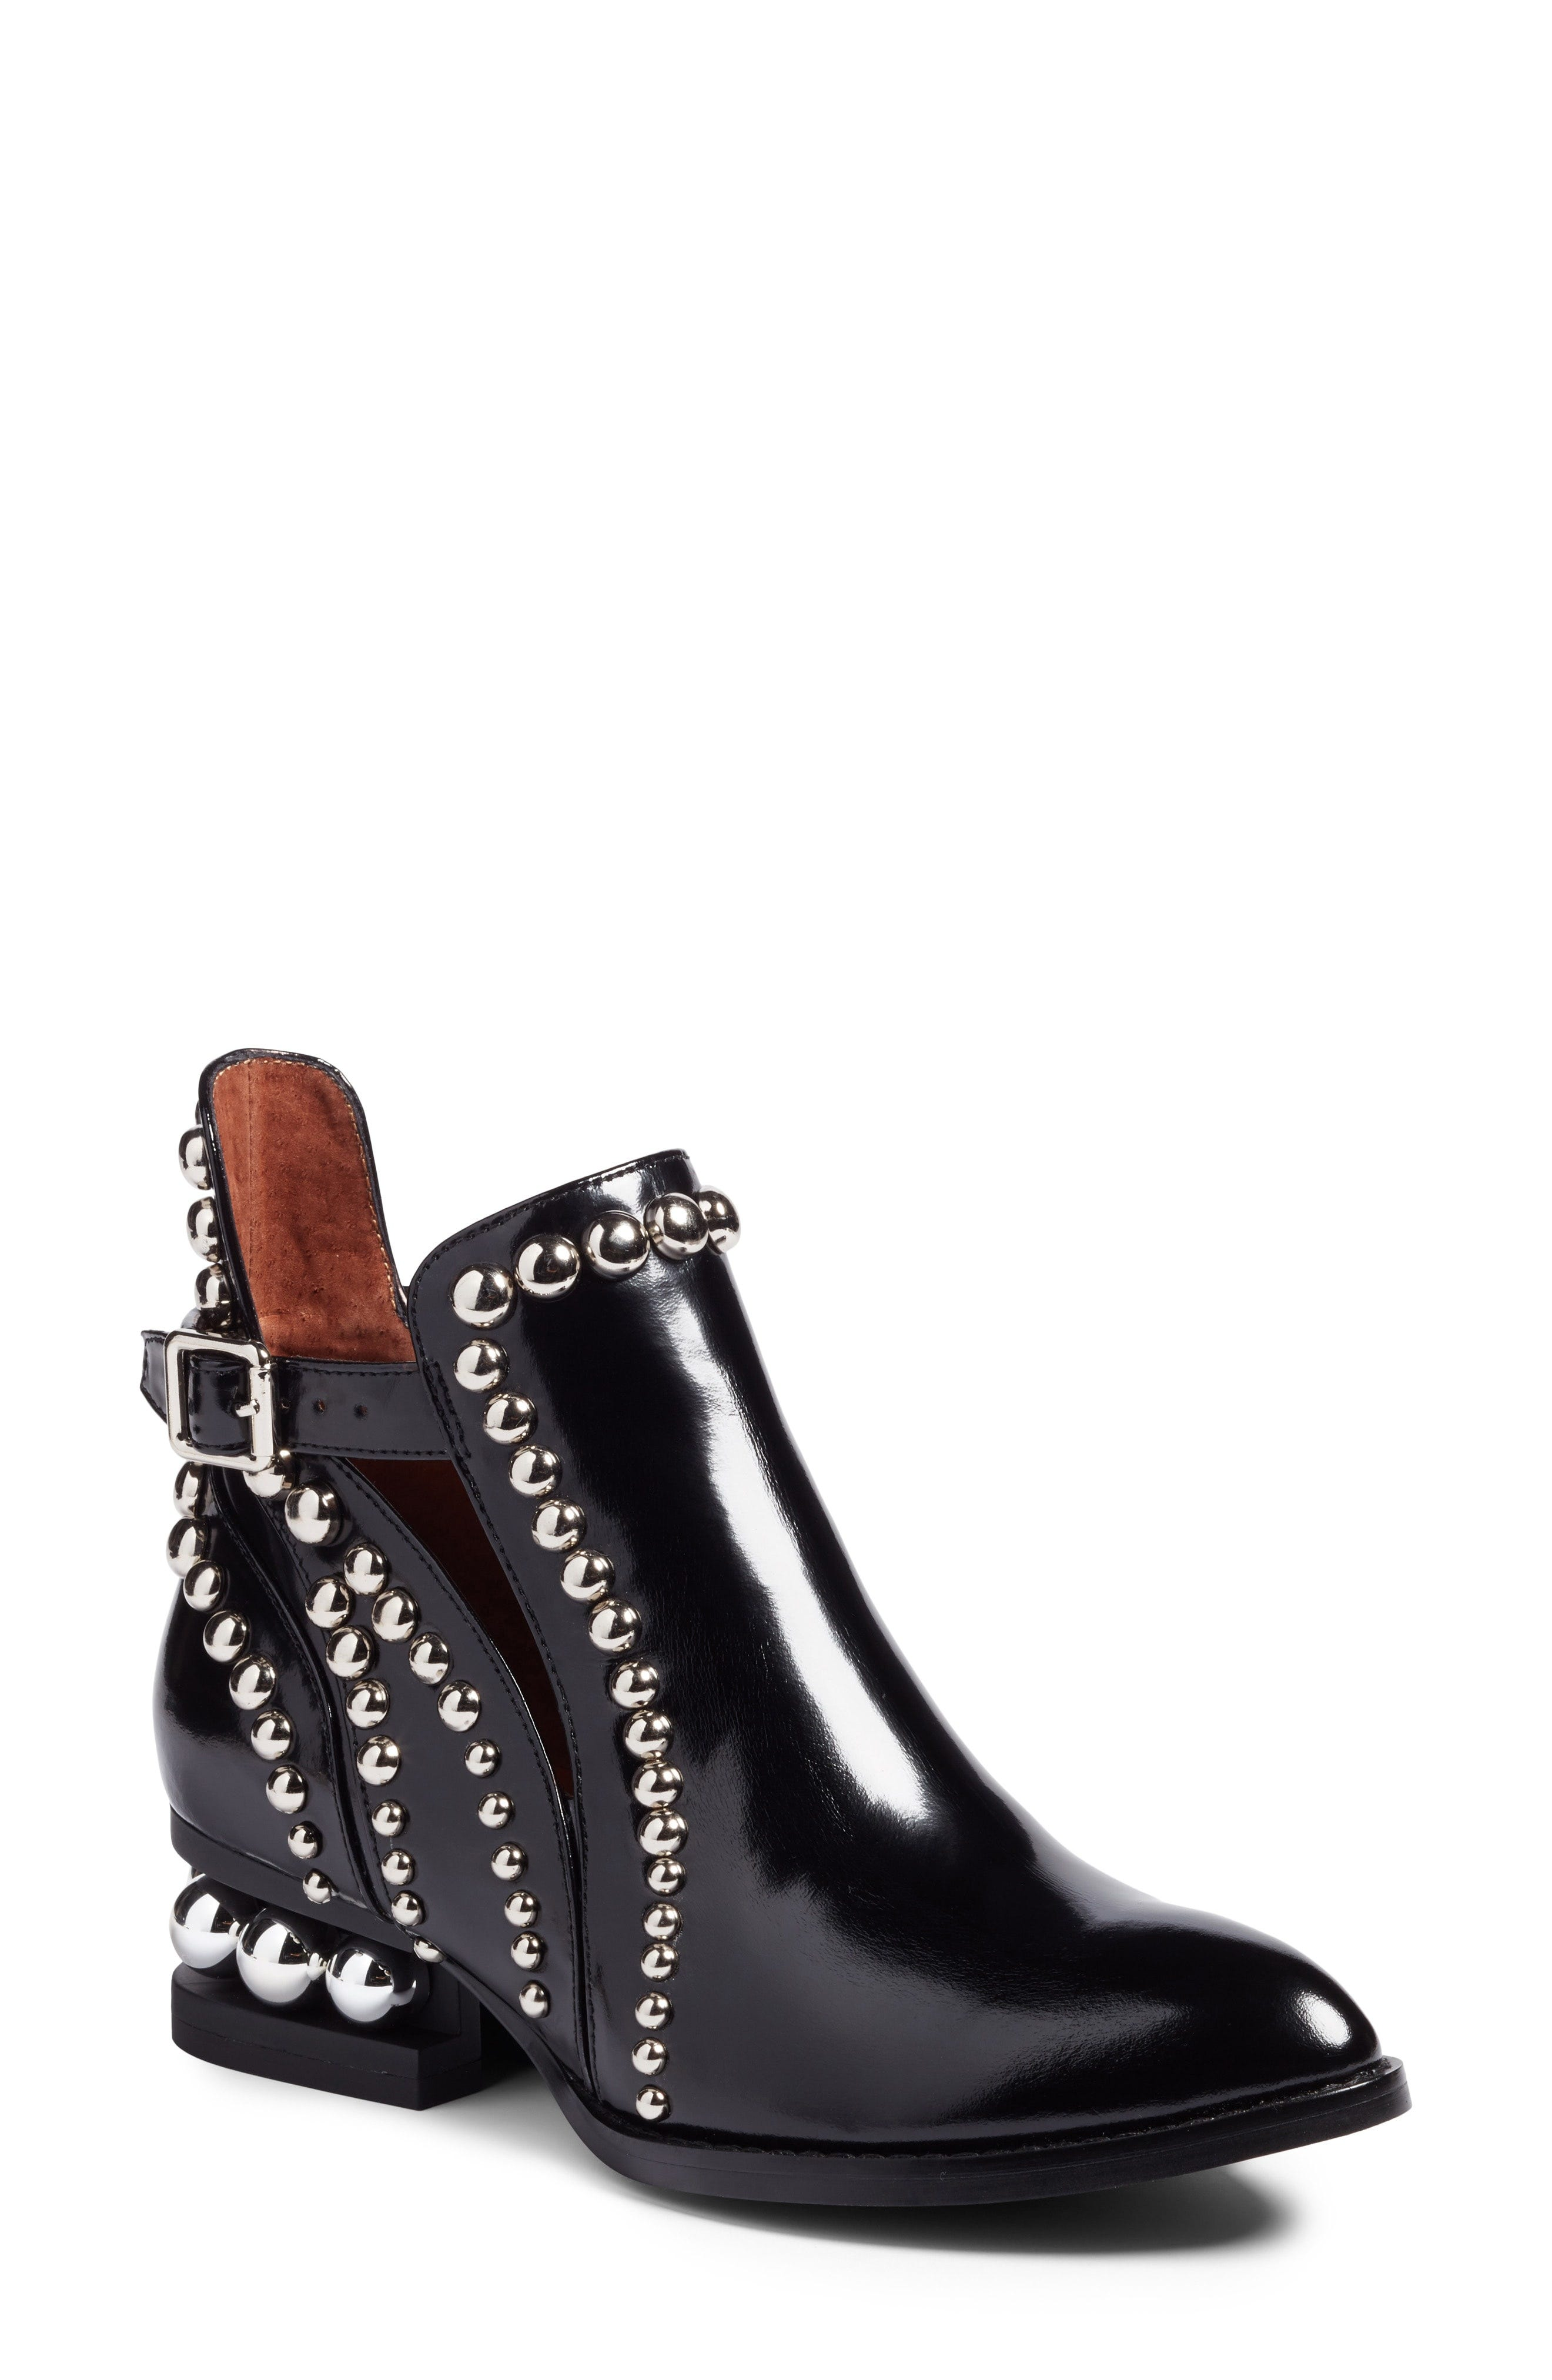 dbfe9173b004 Best Black Boots and Booties To Buy For Fall 2018